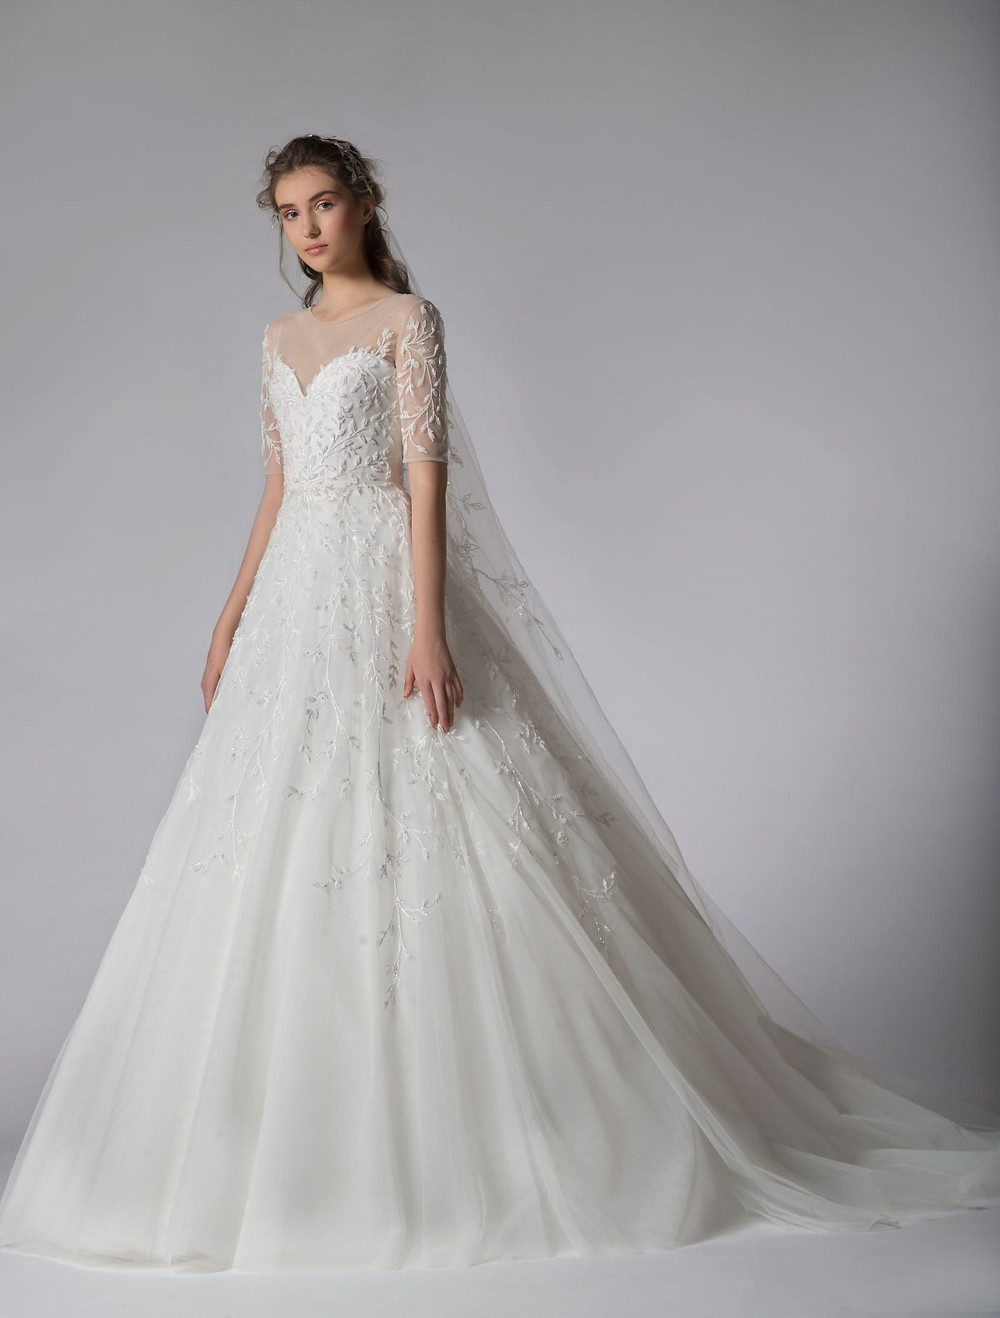 A Georges Hobeika 3/4 sleeve, ball gown wedding dress, with lace and illusion sleeves